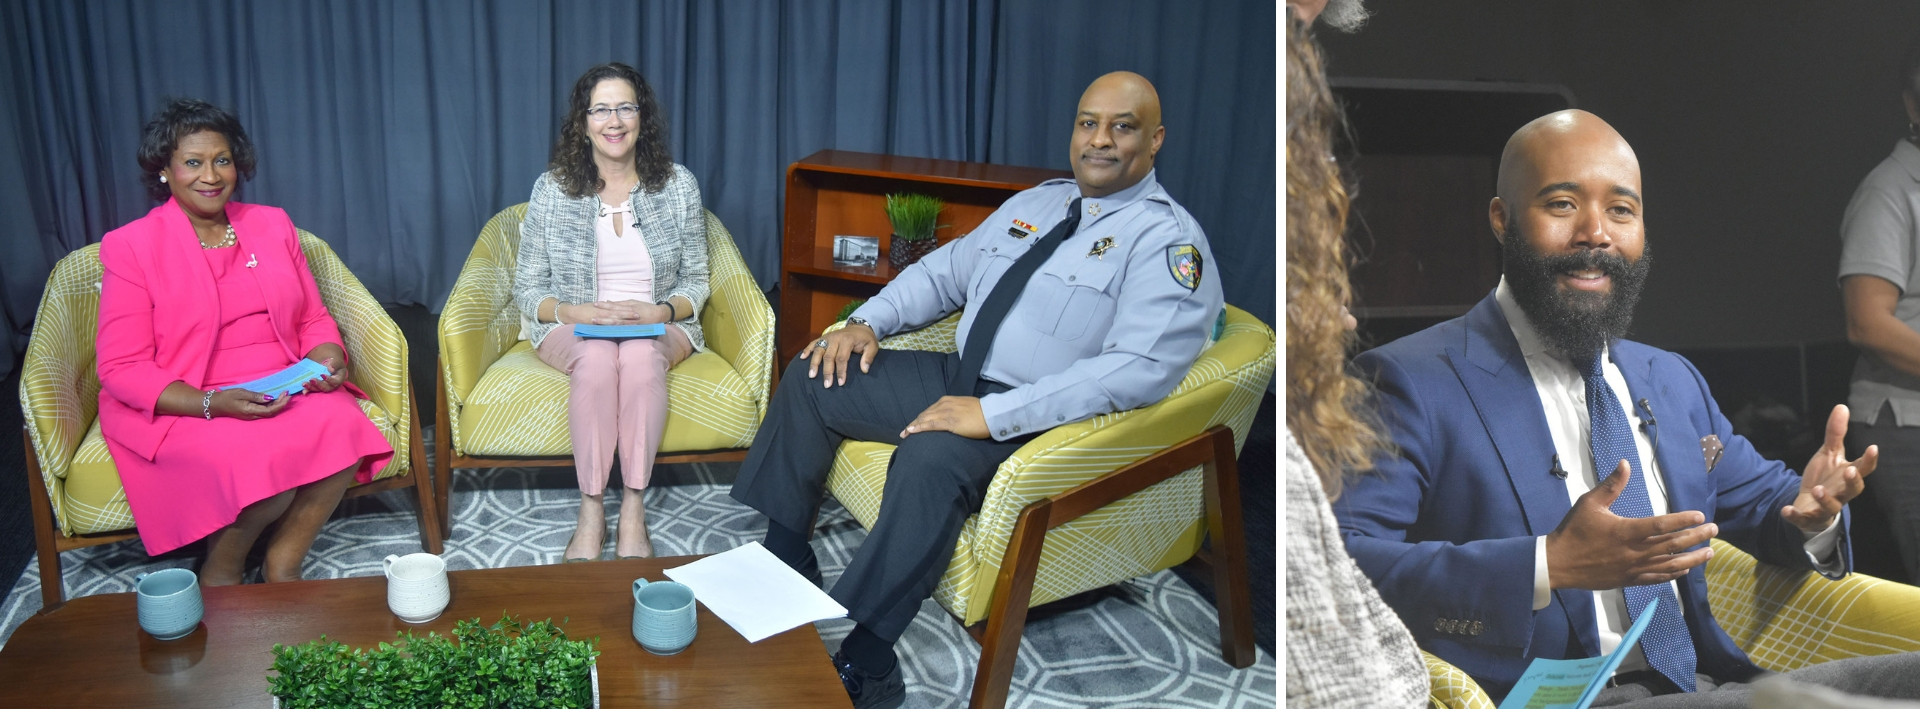 In Touch April 2019 Co-Hosts with Sheriff Clarence Birkhead and MBK Durham's Edmund Lewis